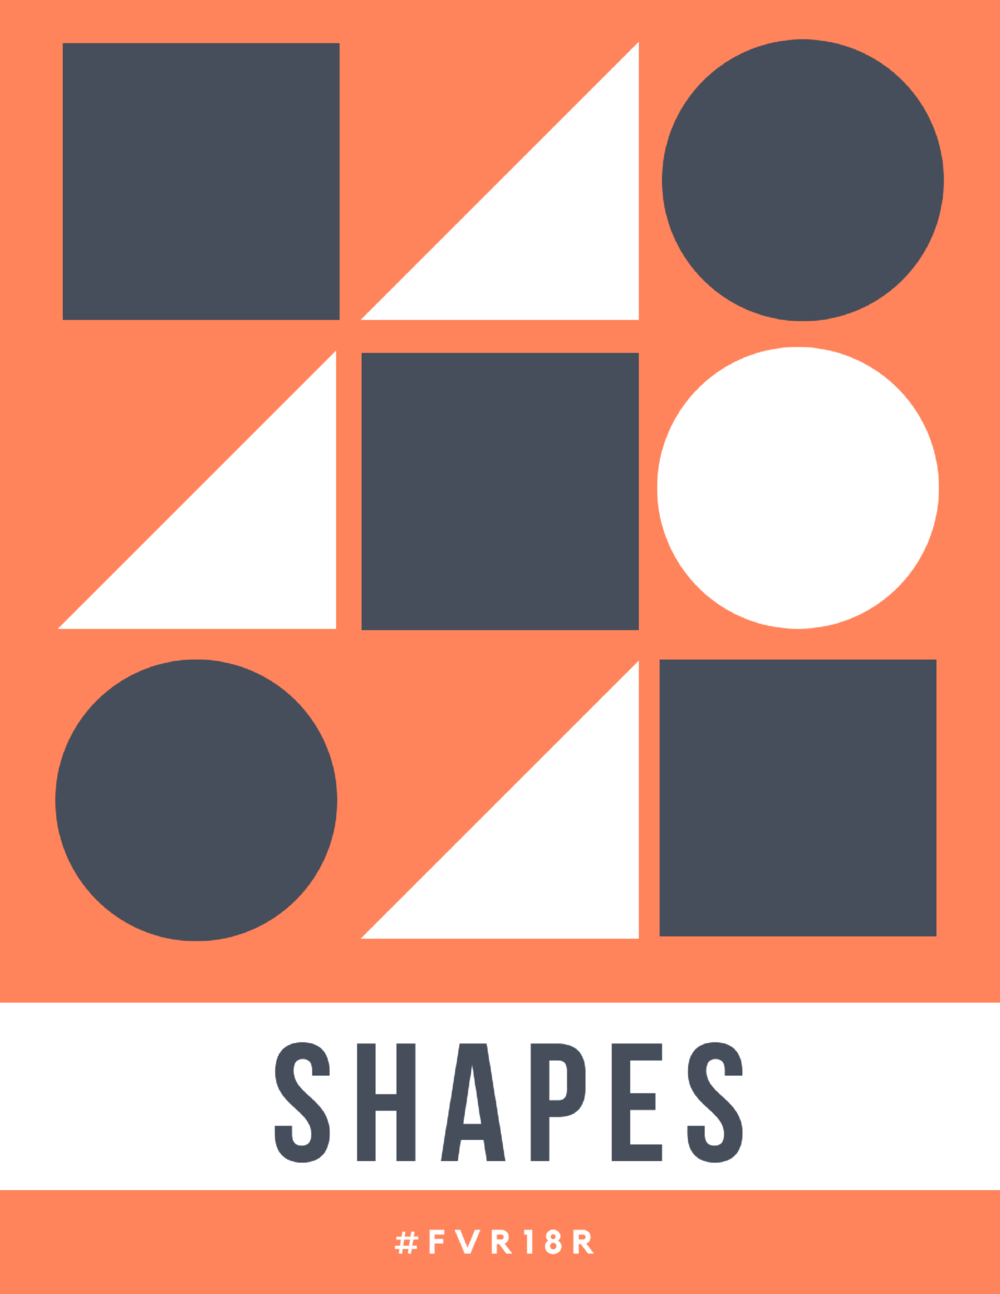 K-2 Library Signage, Shapes